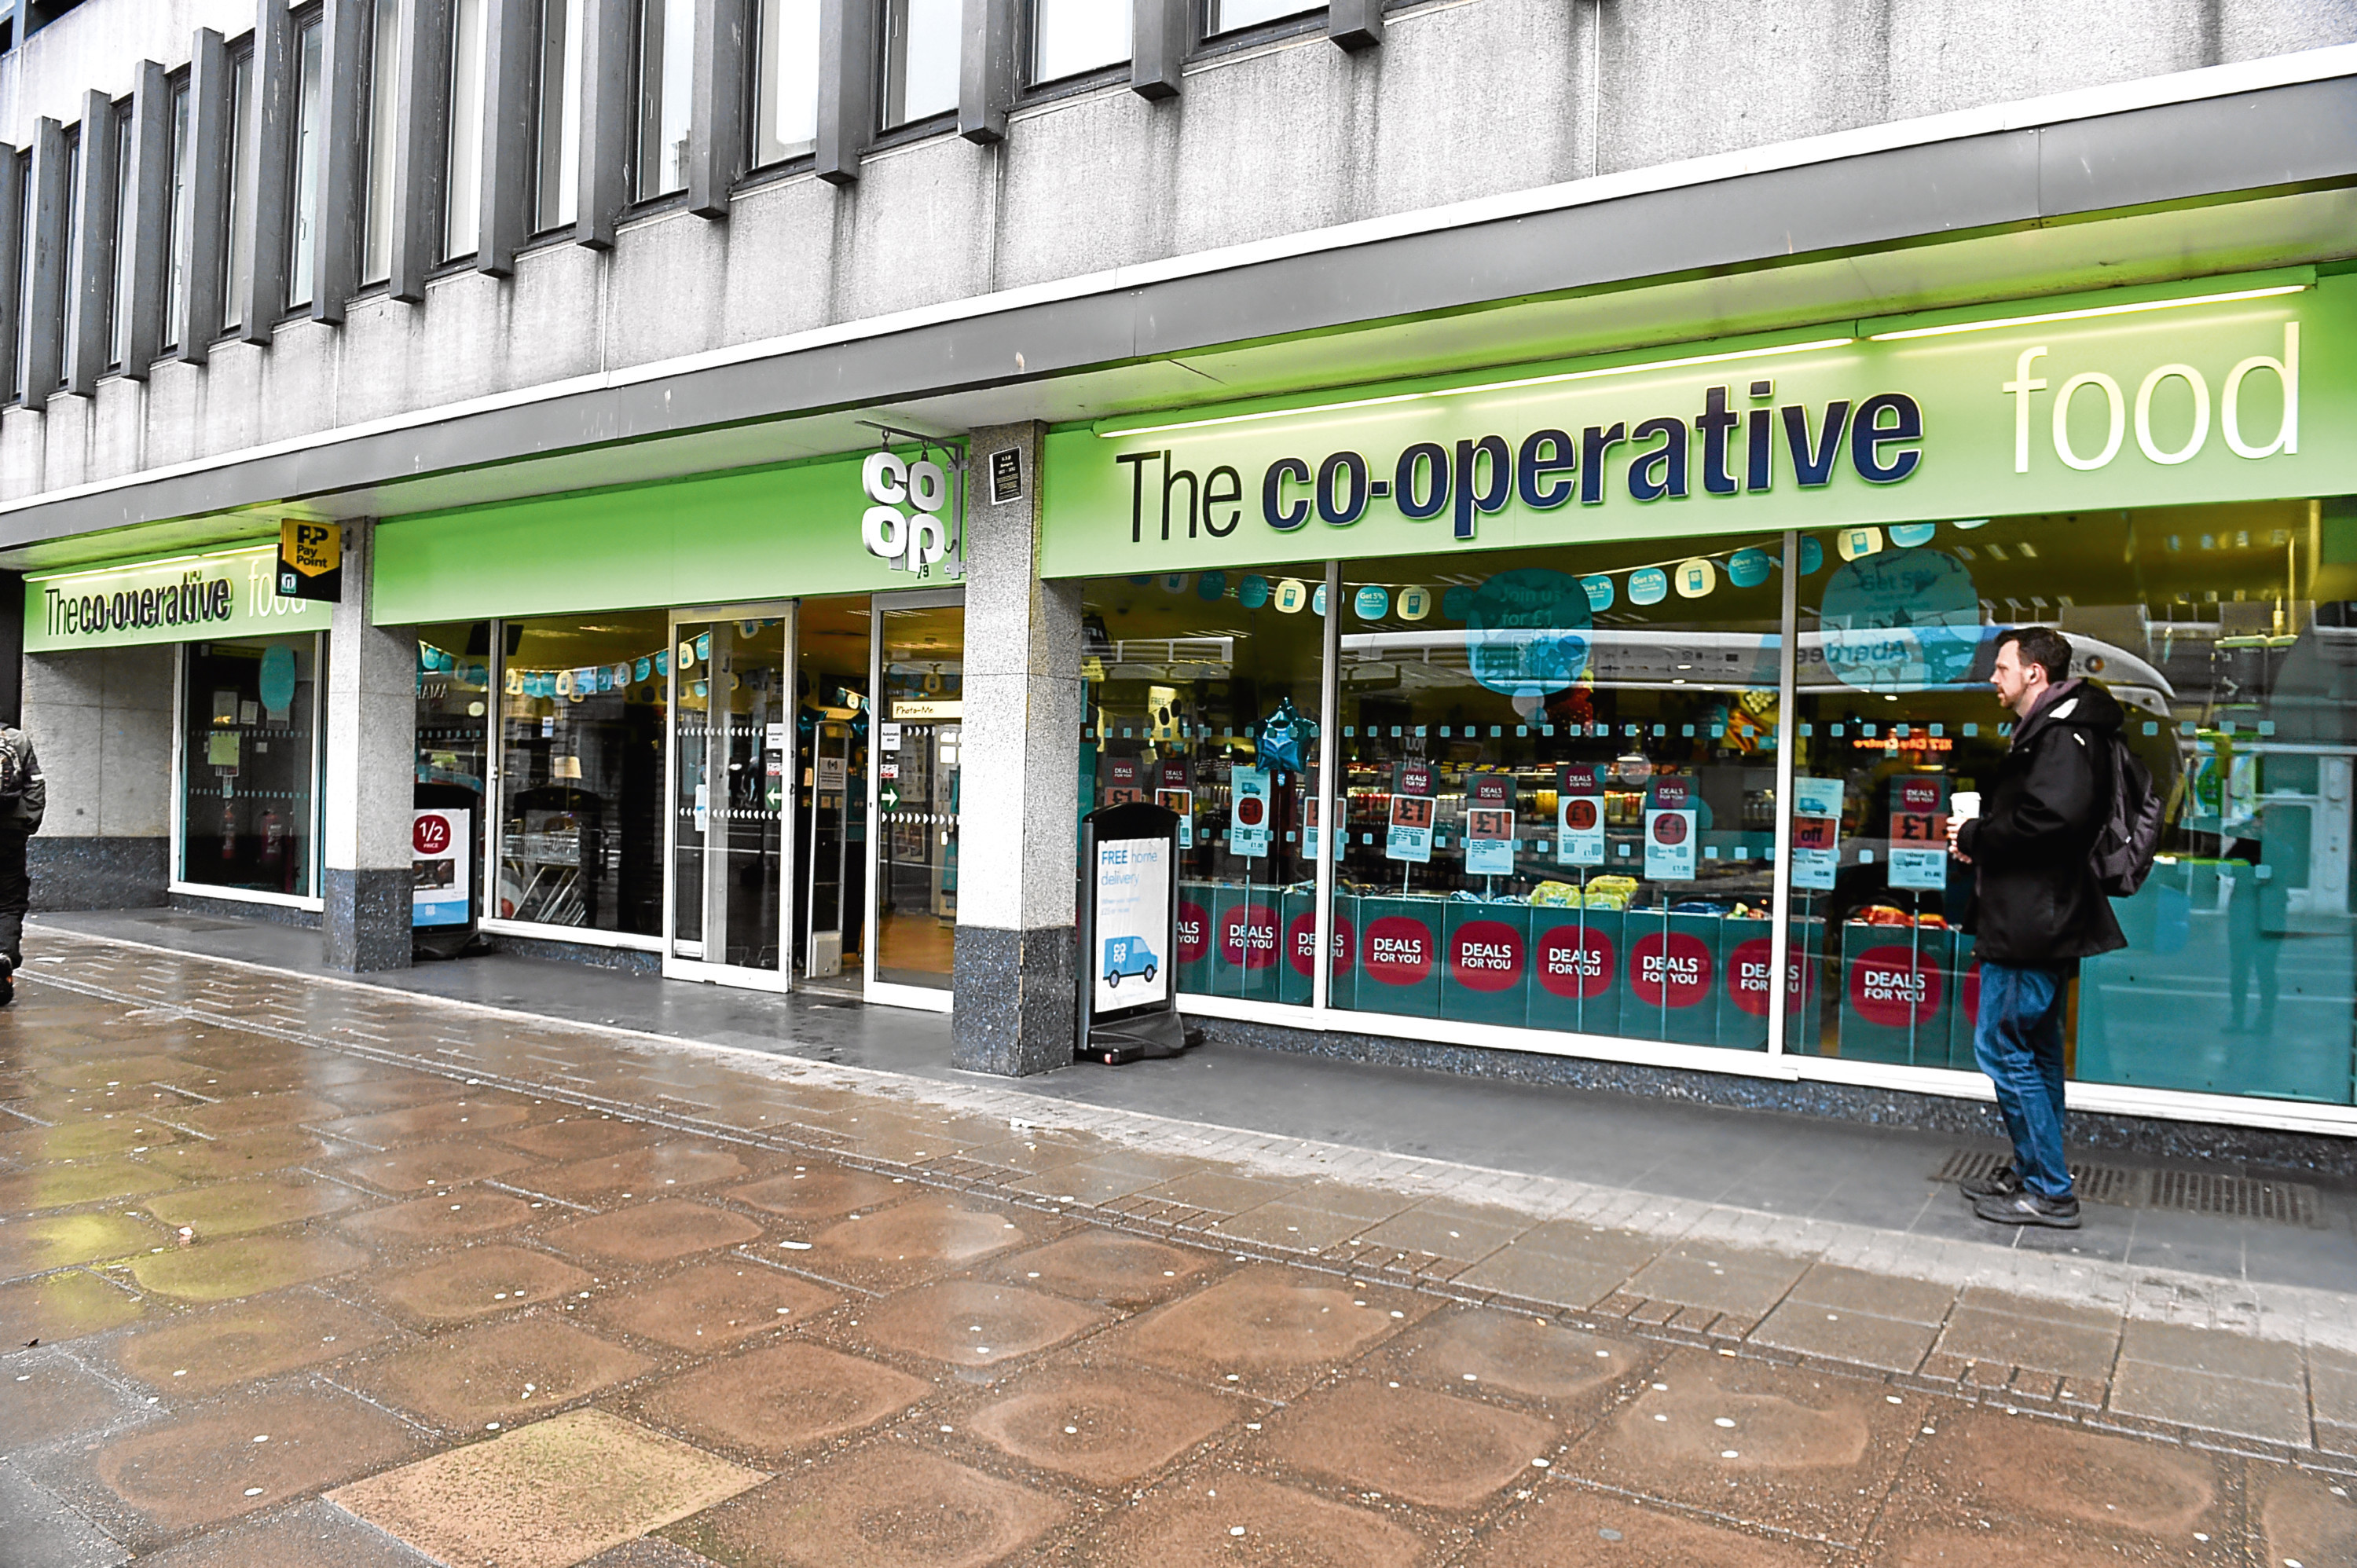 The incident happened outside the Co-op on Union Street.